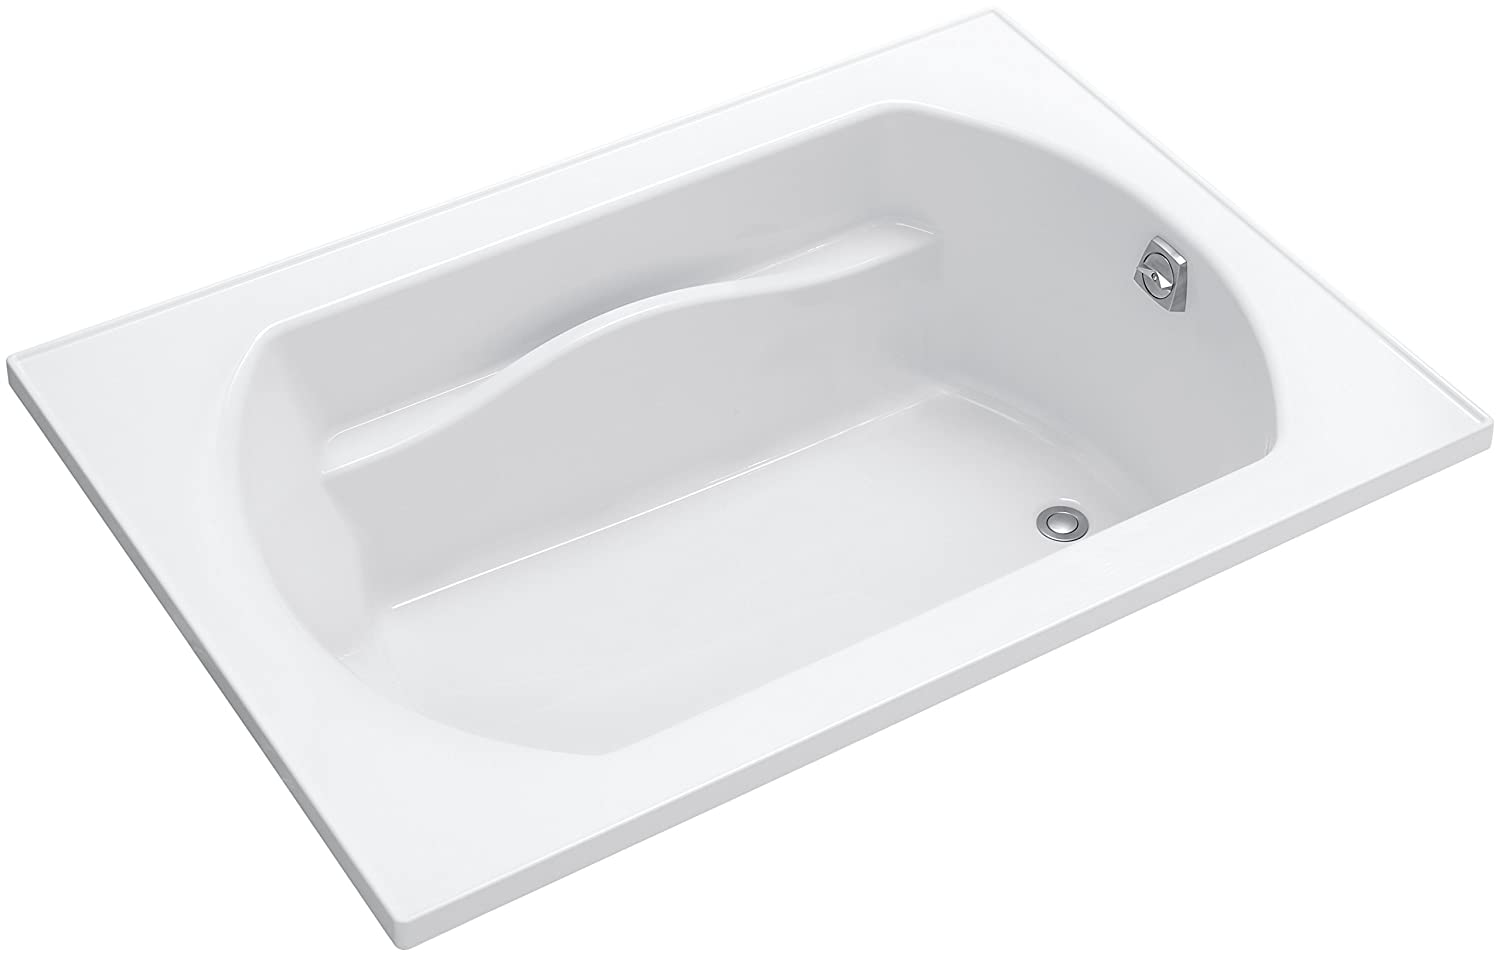 STERLING 71281100 0 Lawson Series 7128 60 Inch X 42 Inch Bath With  Reversible Drain, White   Drop In Bathtubs   Amazon.com